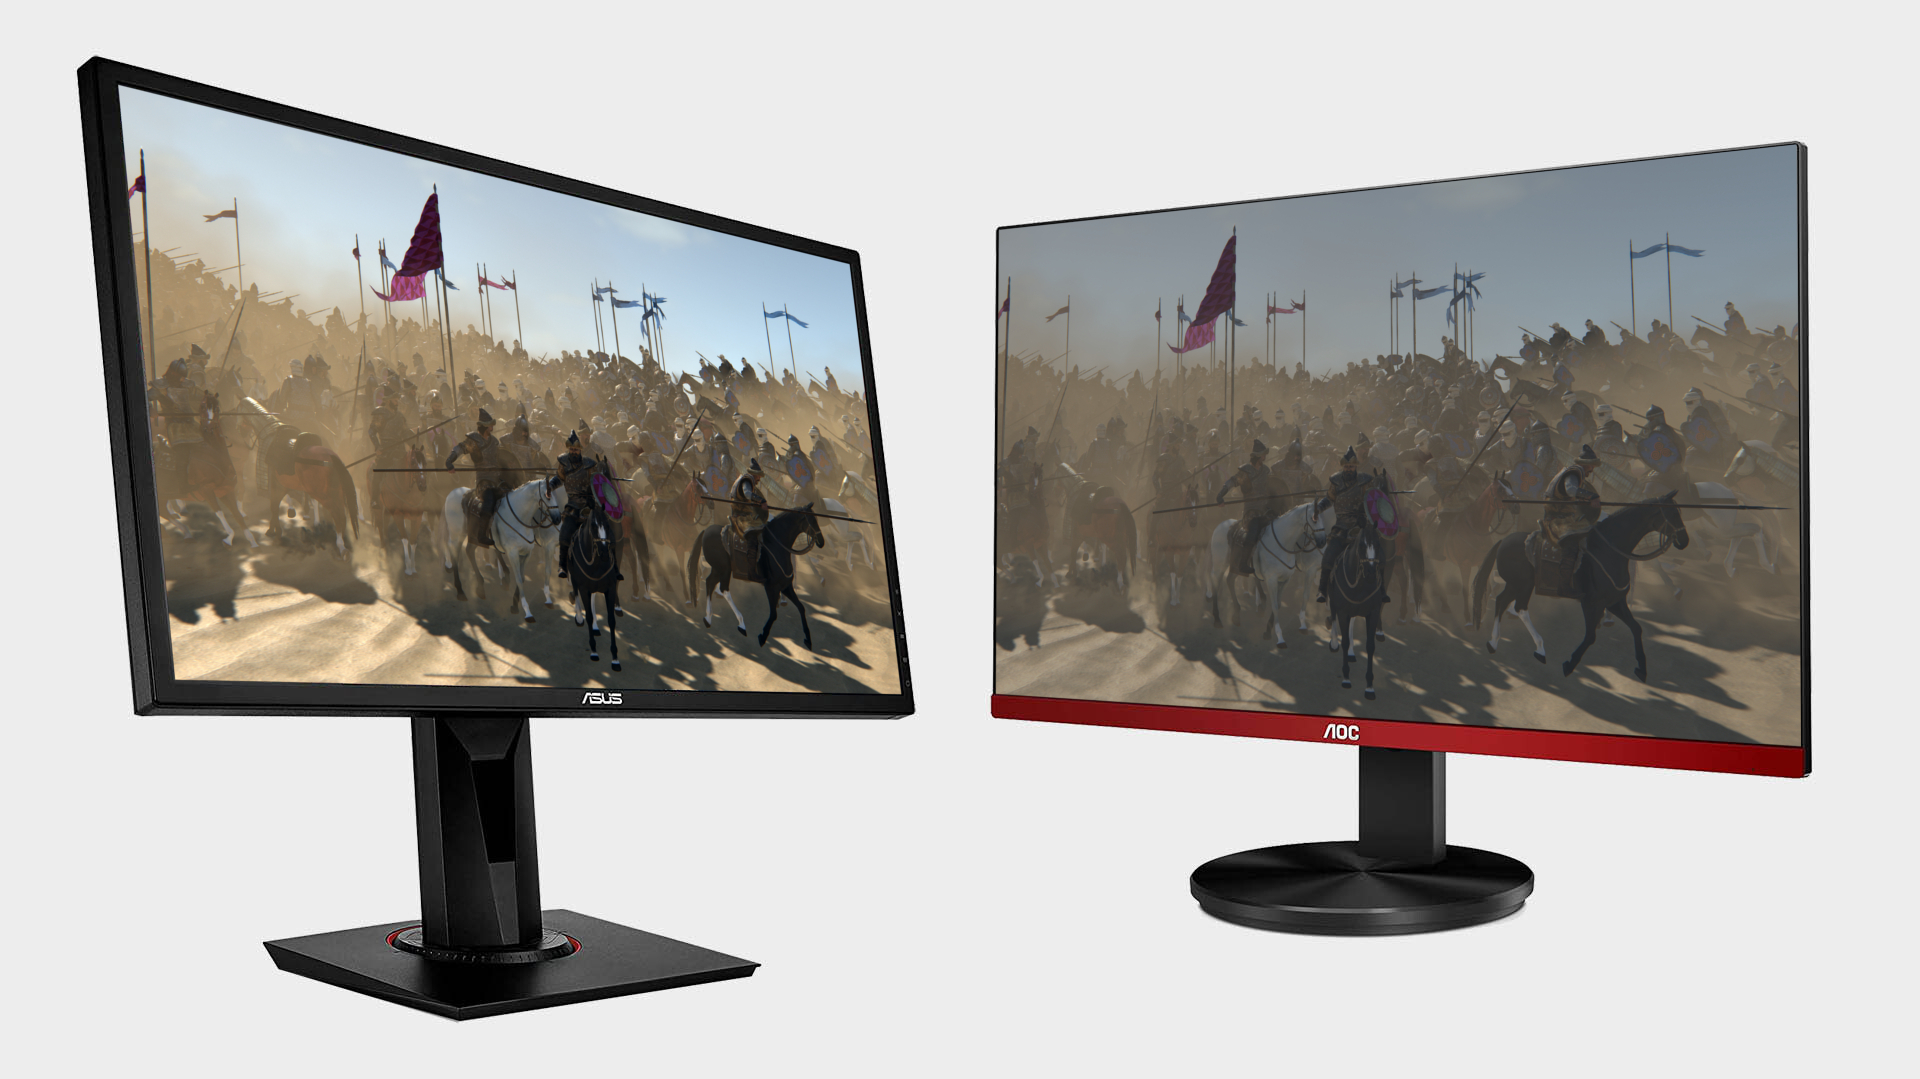 TN vs IPS displays - which is better for gaming?  PC Gamer